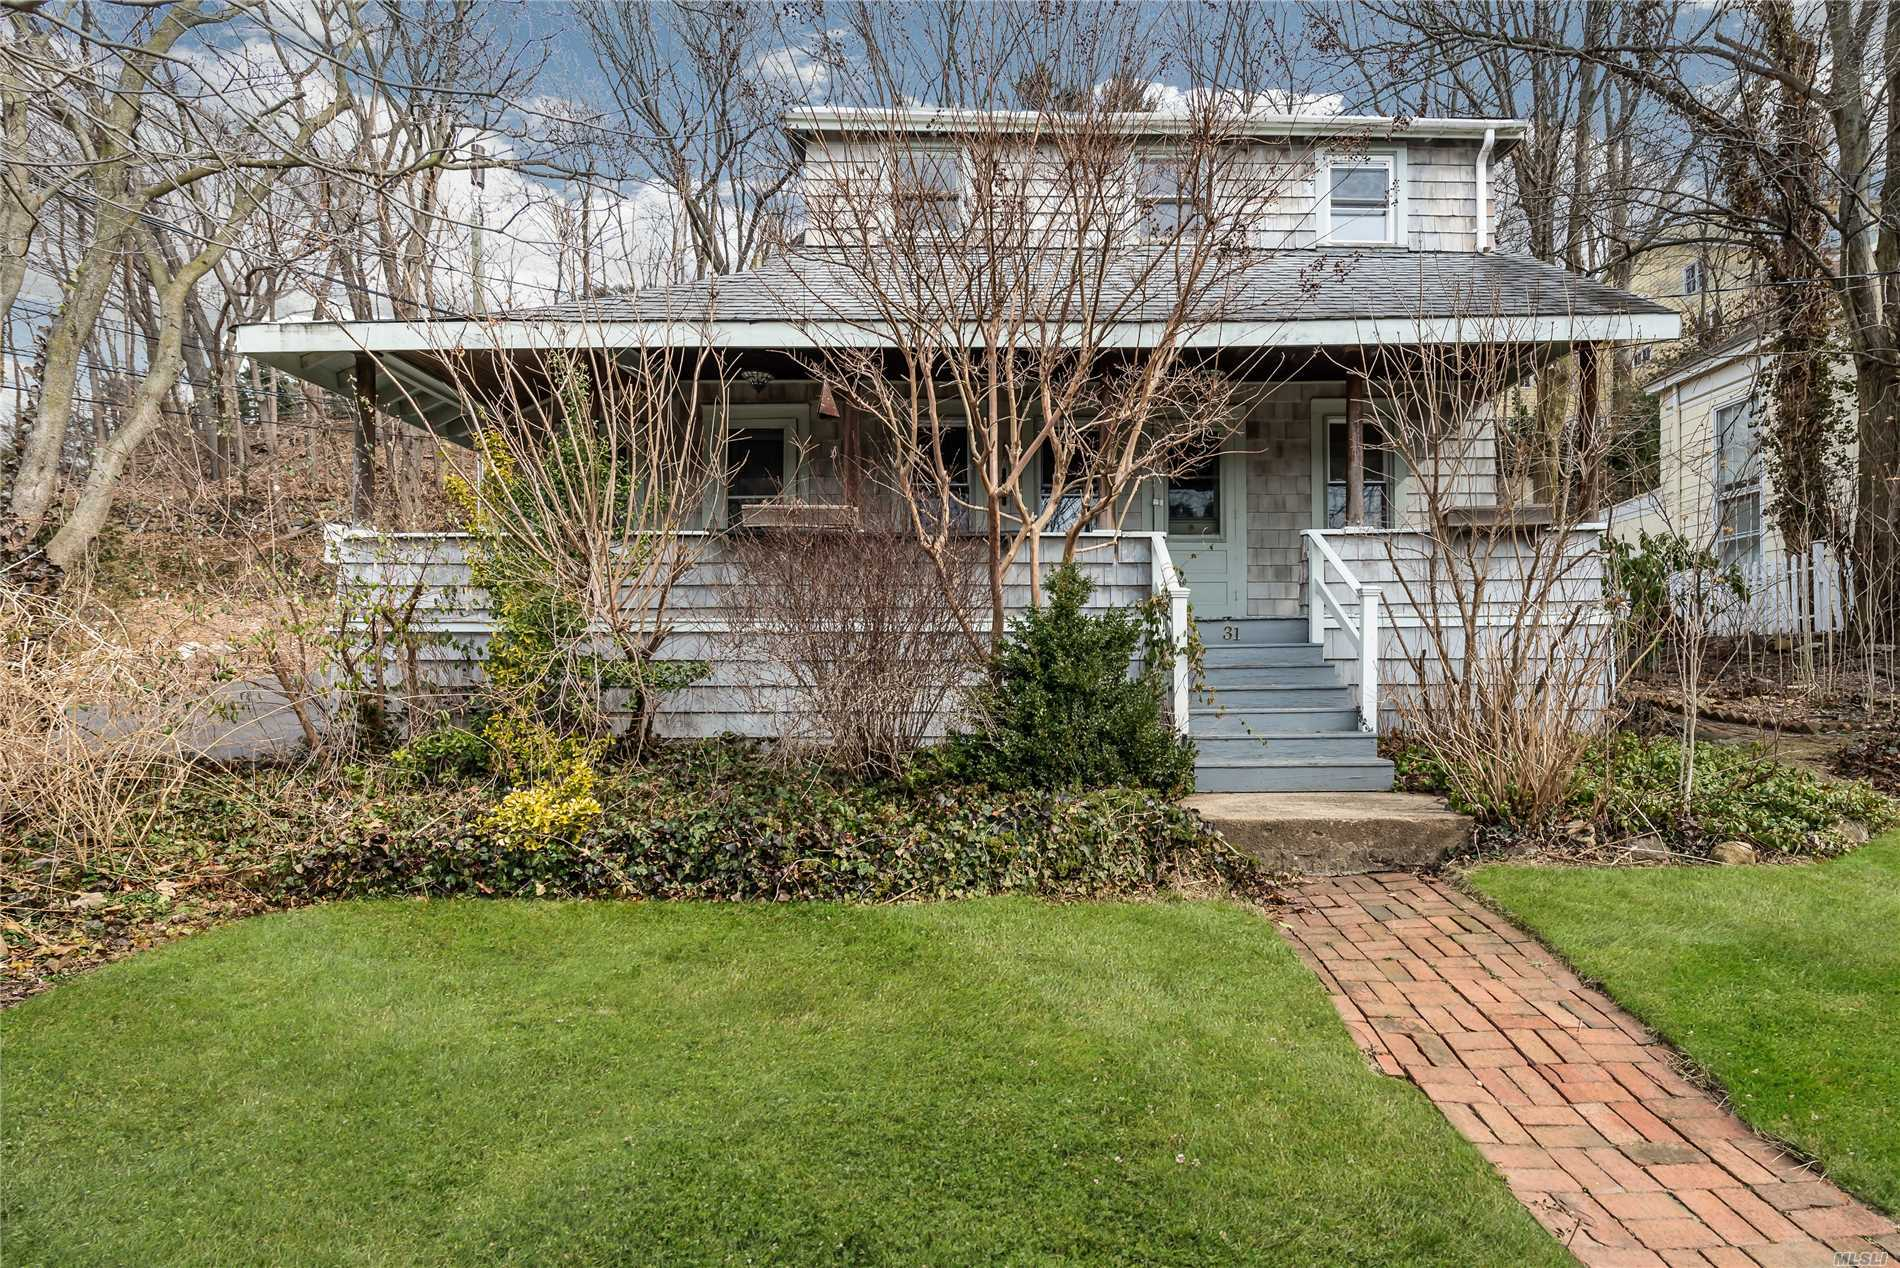 Charming Home In Historic Village Of Roslyn With Original Details with Views of Roslyn Pond... Needs TLC Living Room With Dining Area  Country Eik With Antique Chambers Stove, A Pot Belly Stove. 3 Bedrooms 1 Bath. Nice Backyard With Perennial Garden In The Summer.